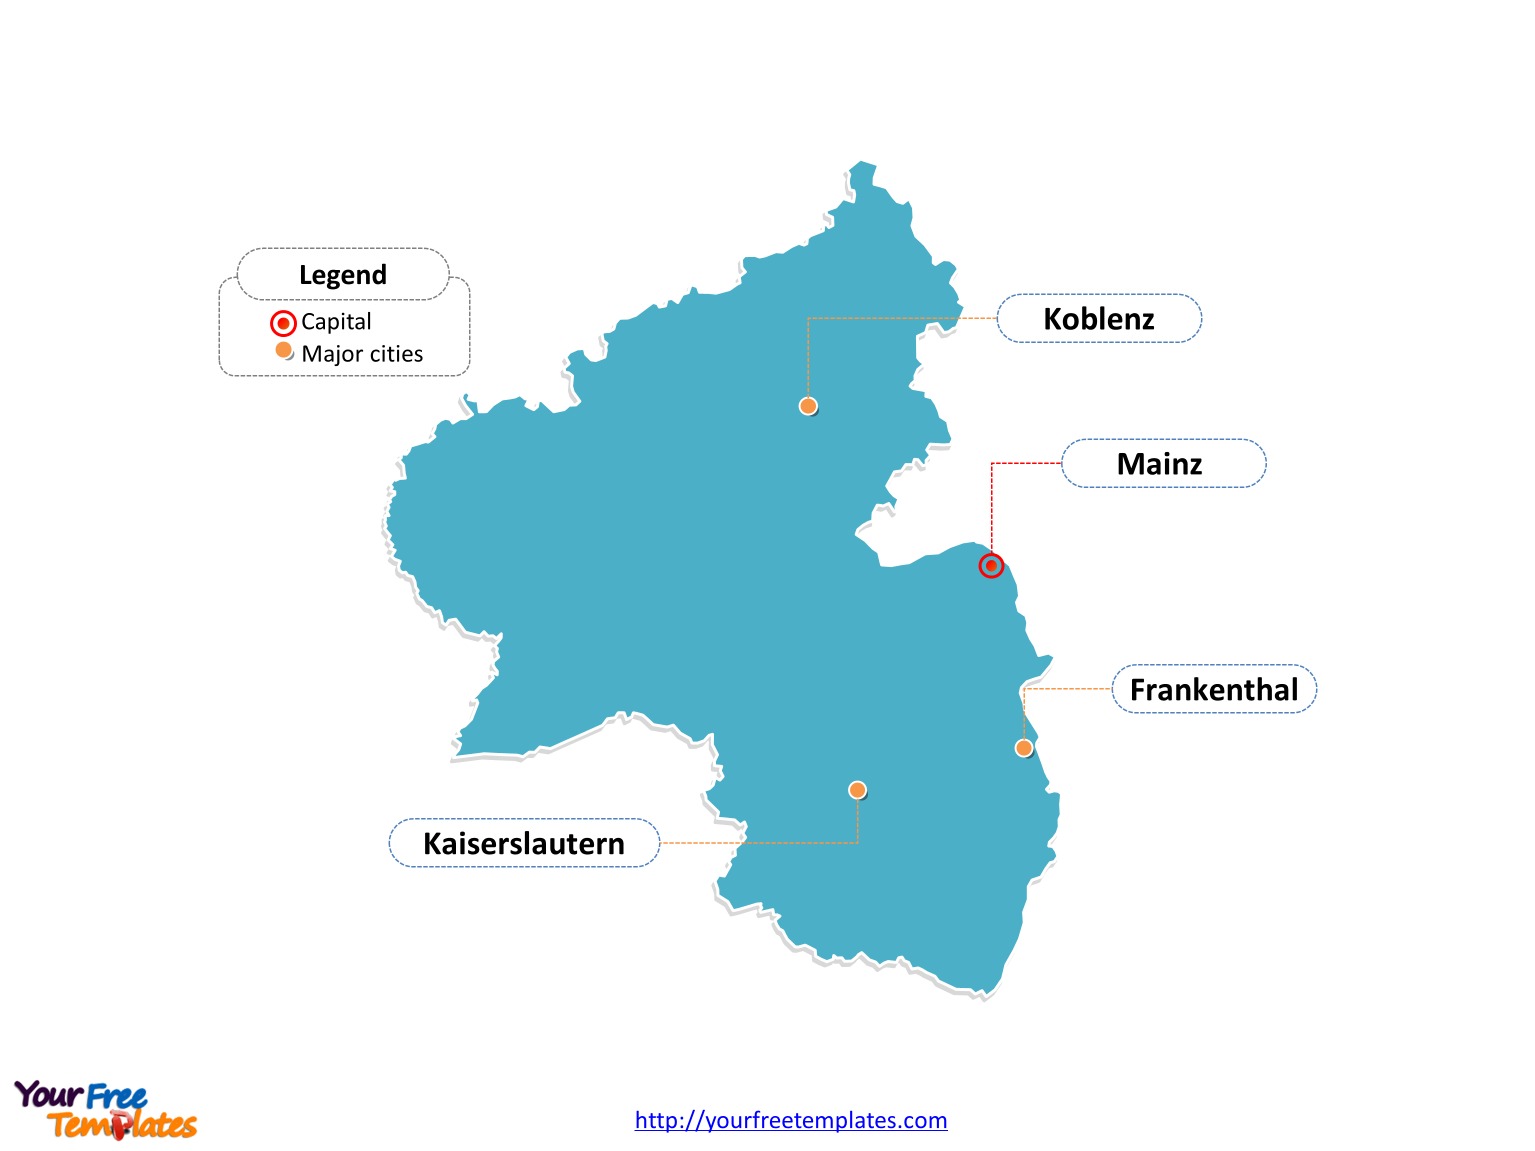 Rhineland-Palatinate Map download labeled with cities